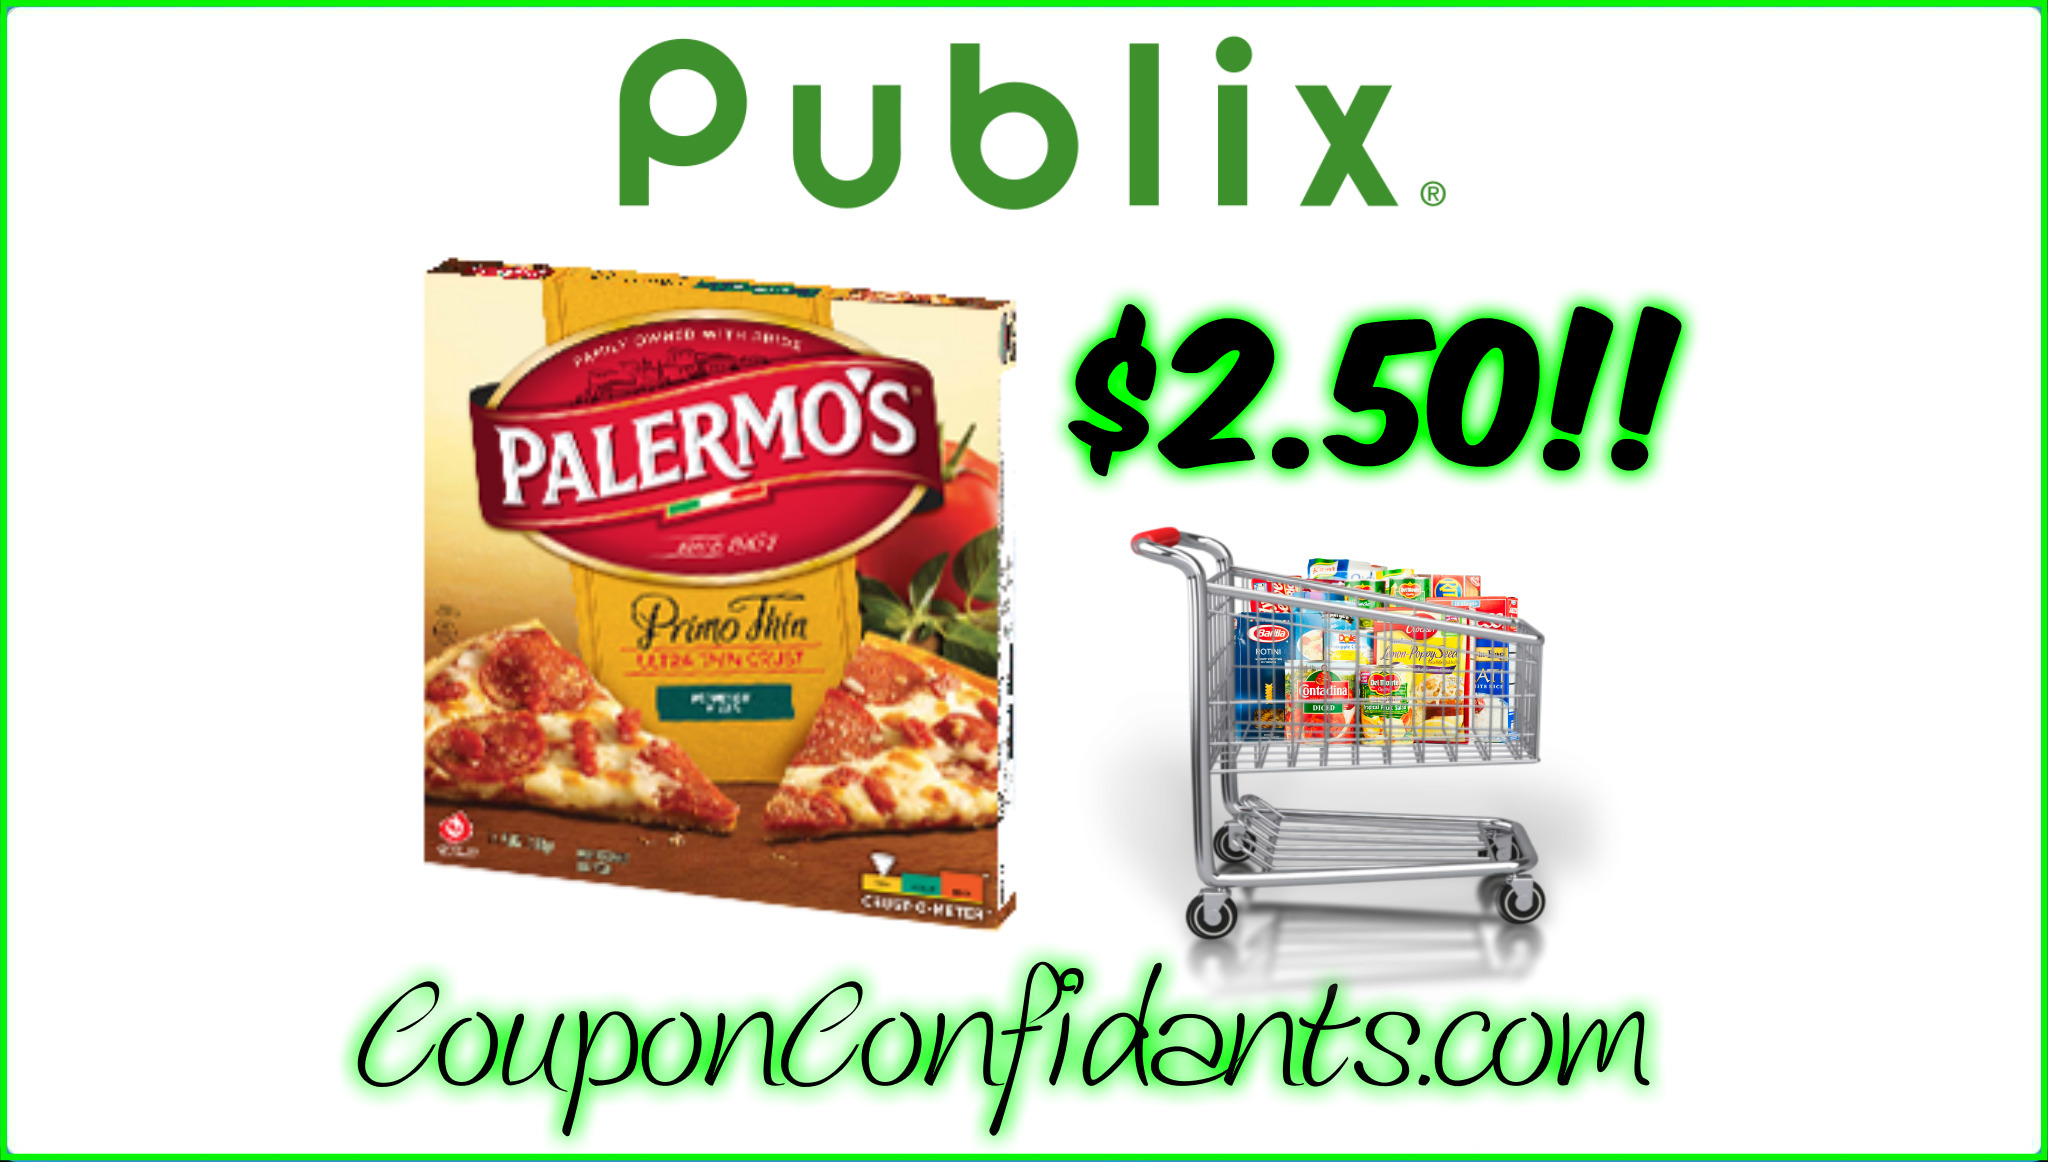 photo regarding Lozo Printable Coupons identified as Publix Visible Easiest Bargains 7/25-7/31 OR 7/26-8/1 ⋆ Coupon